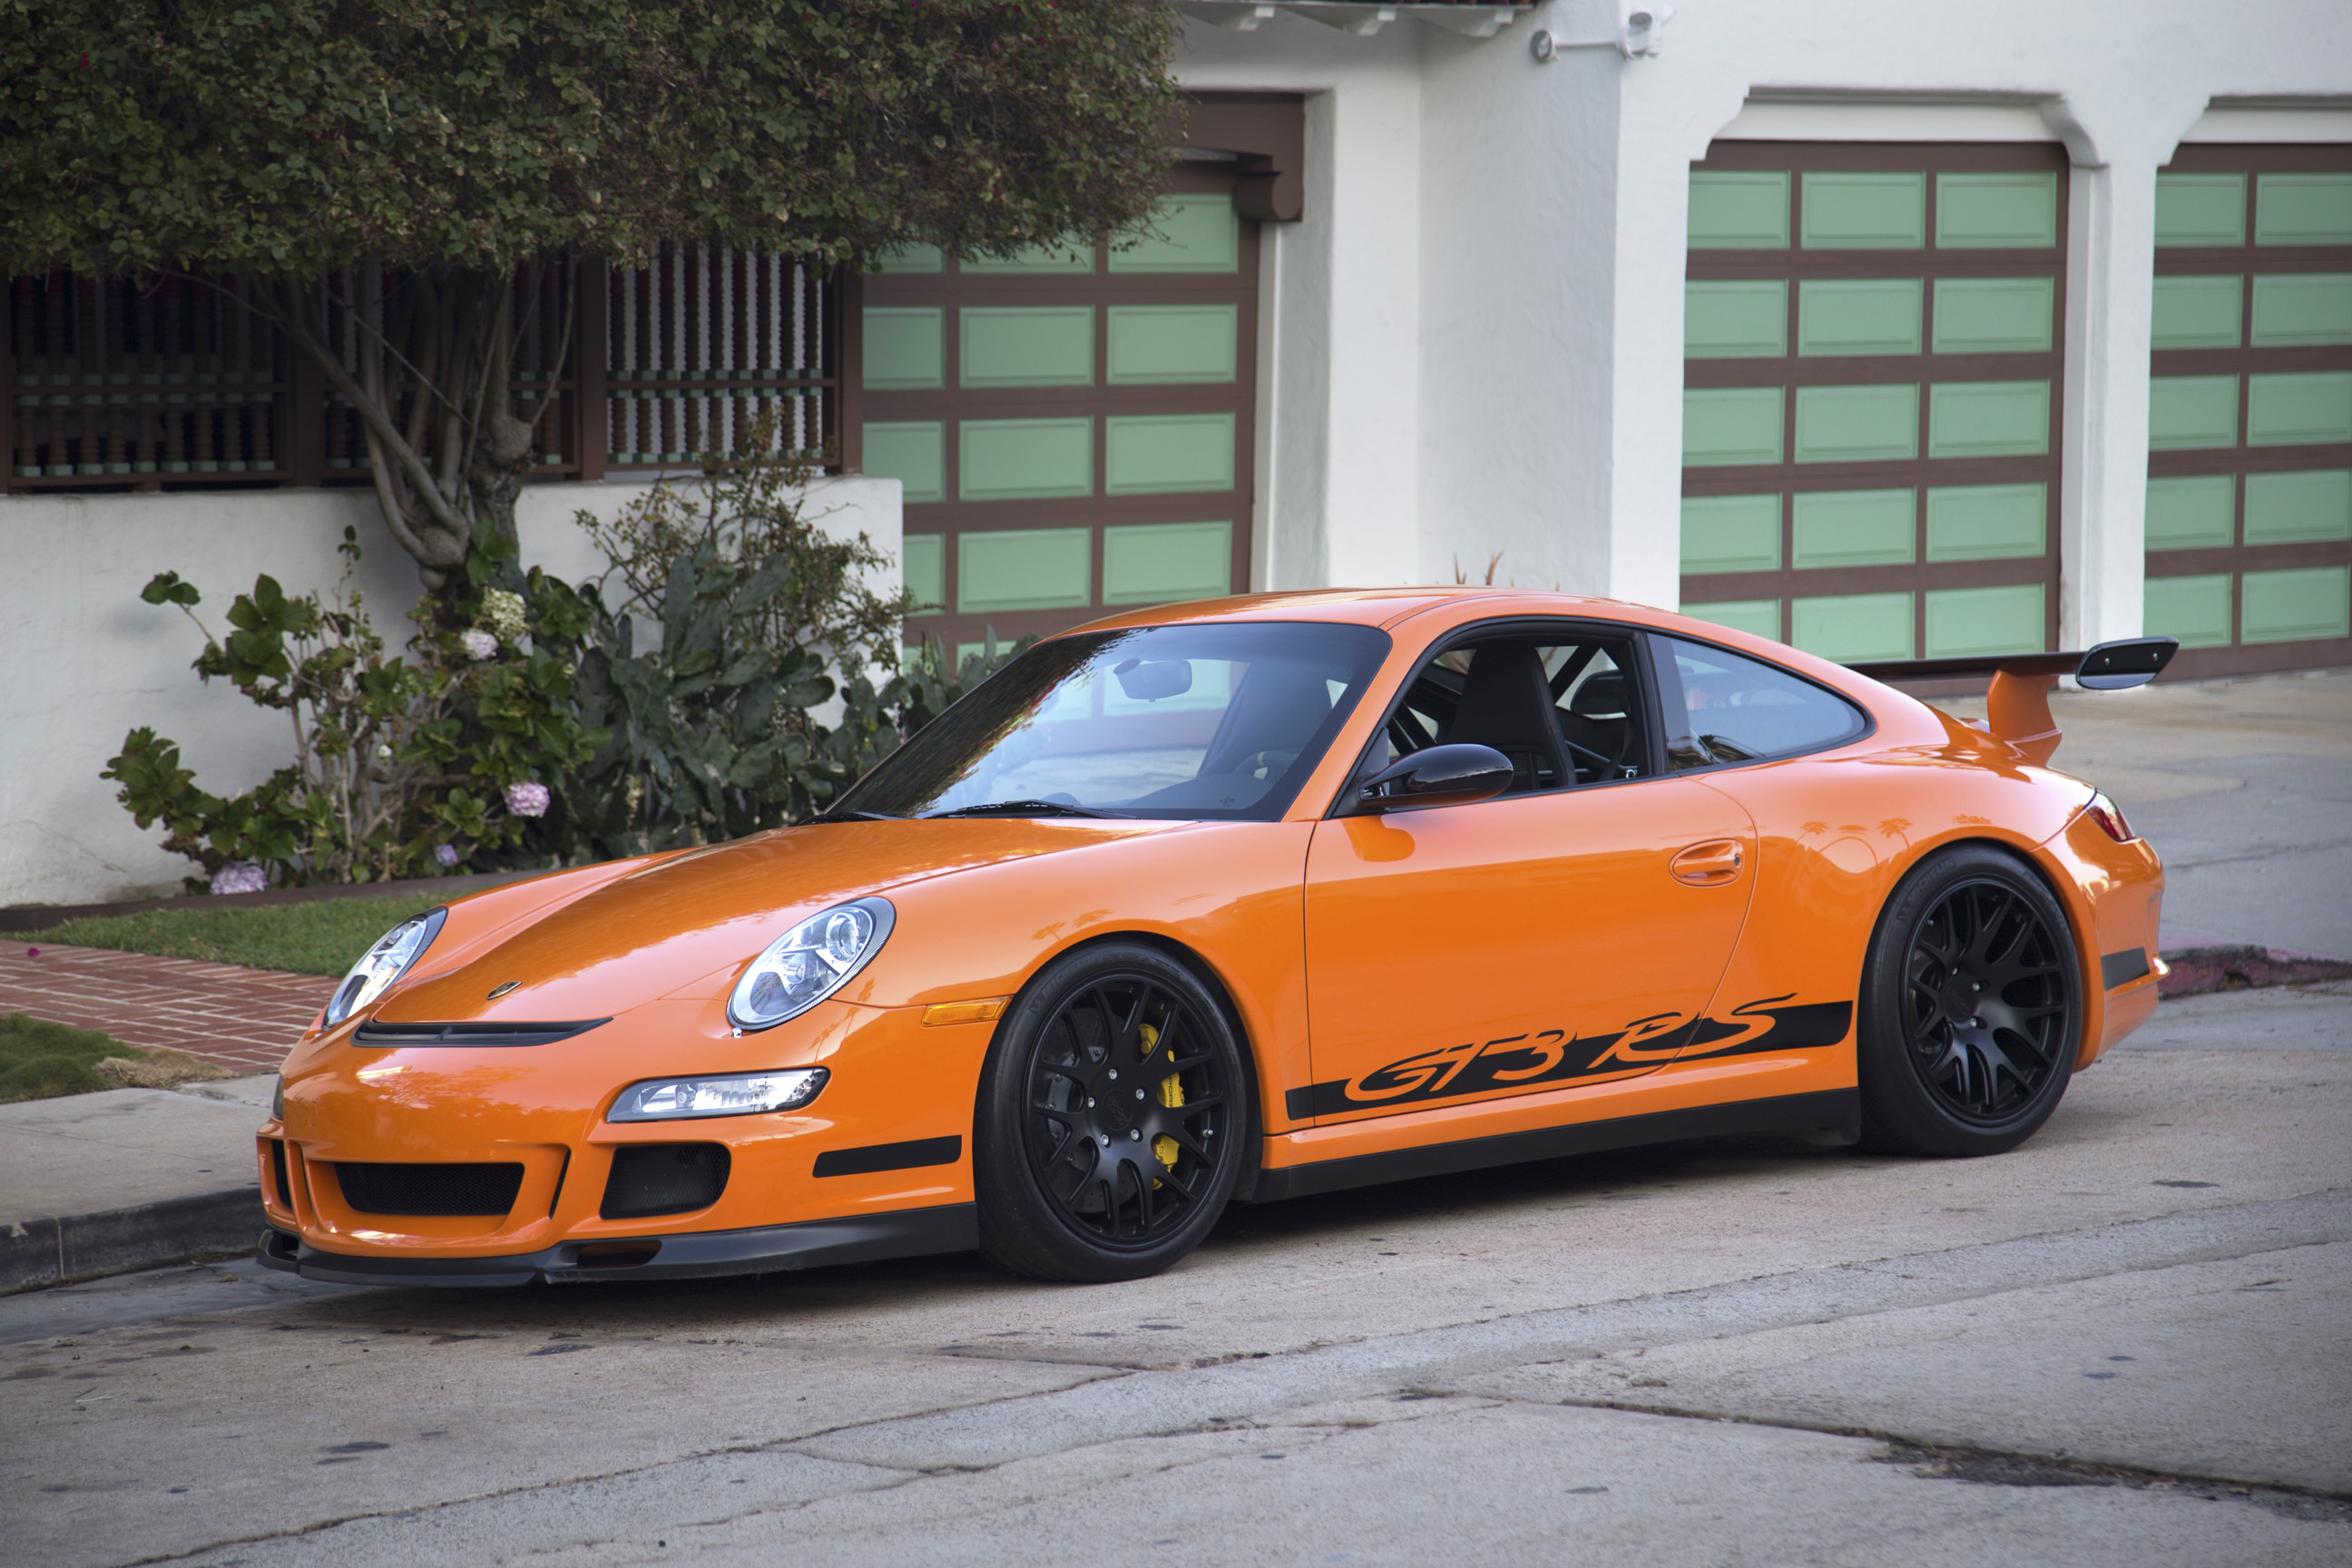 2007 porsche 911 gt3 rs sold grand prix classics la jolla calif. Black Bedroom Furniture Sets. Home Design Ideas